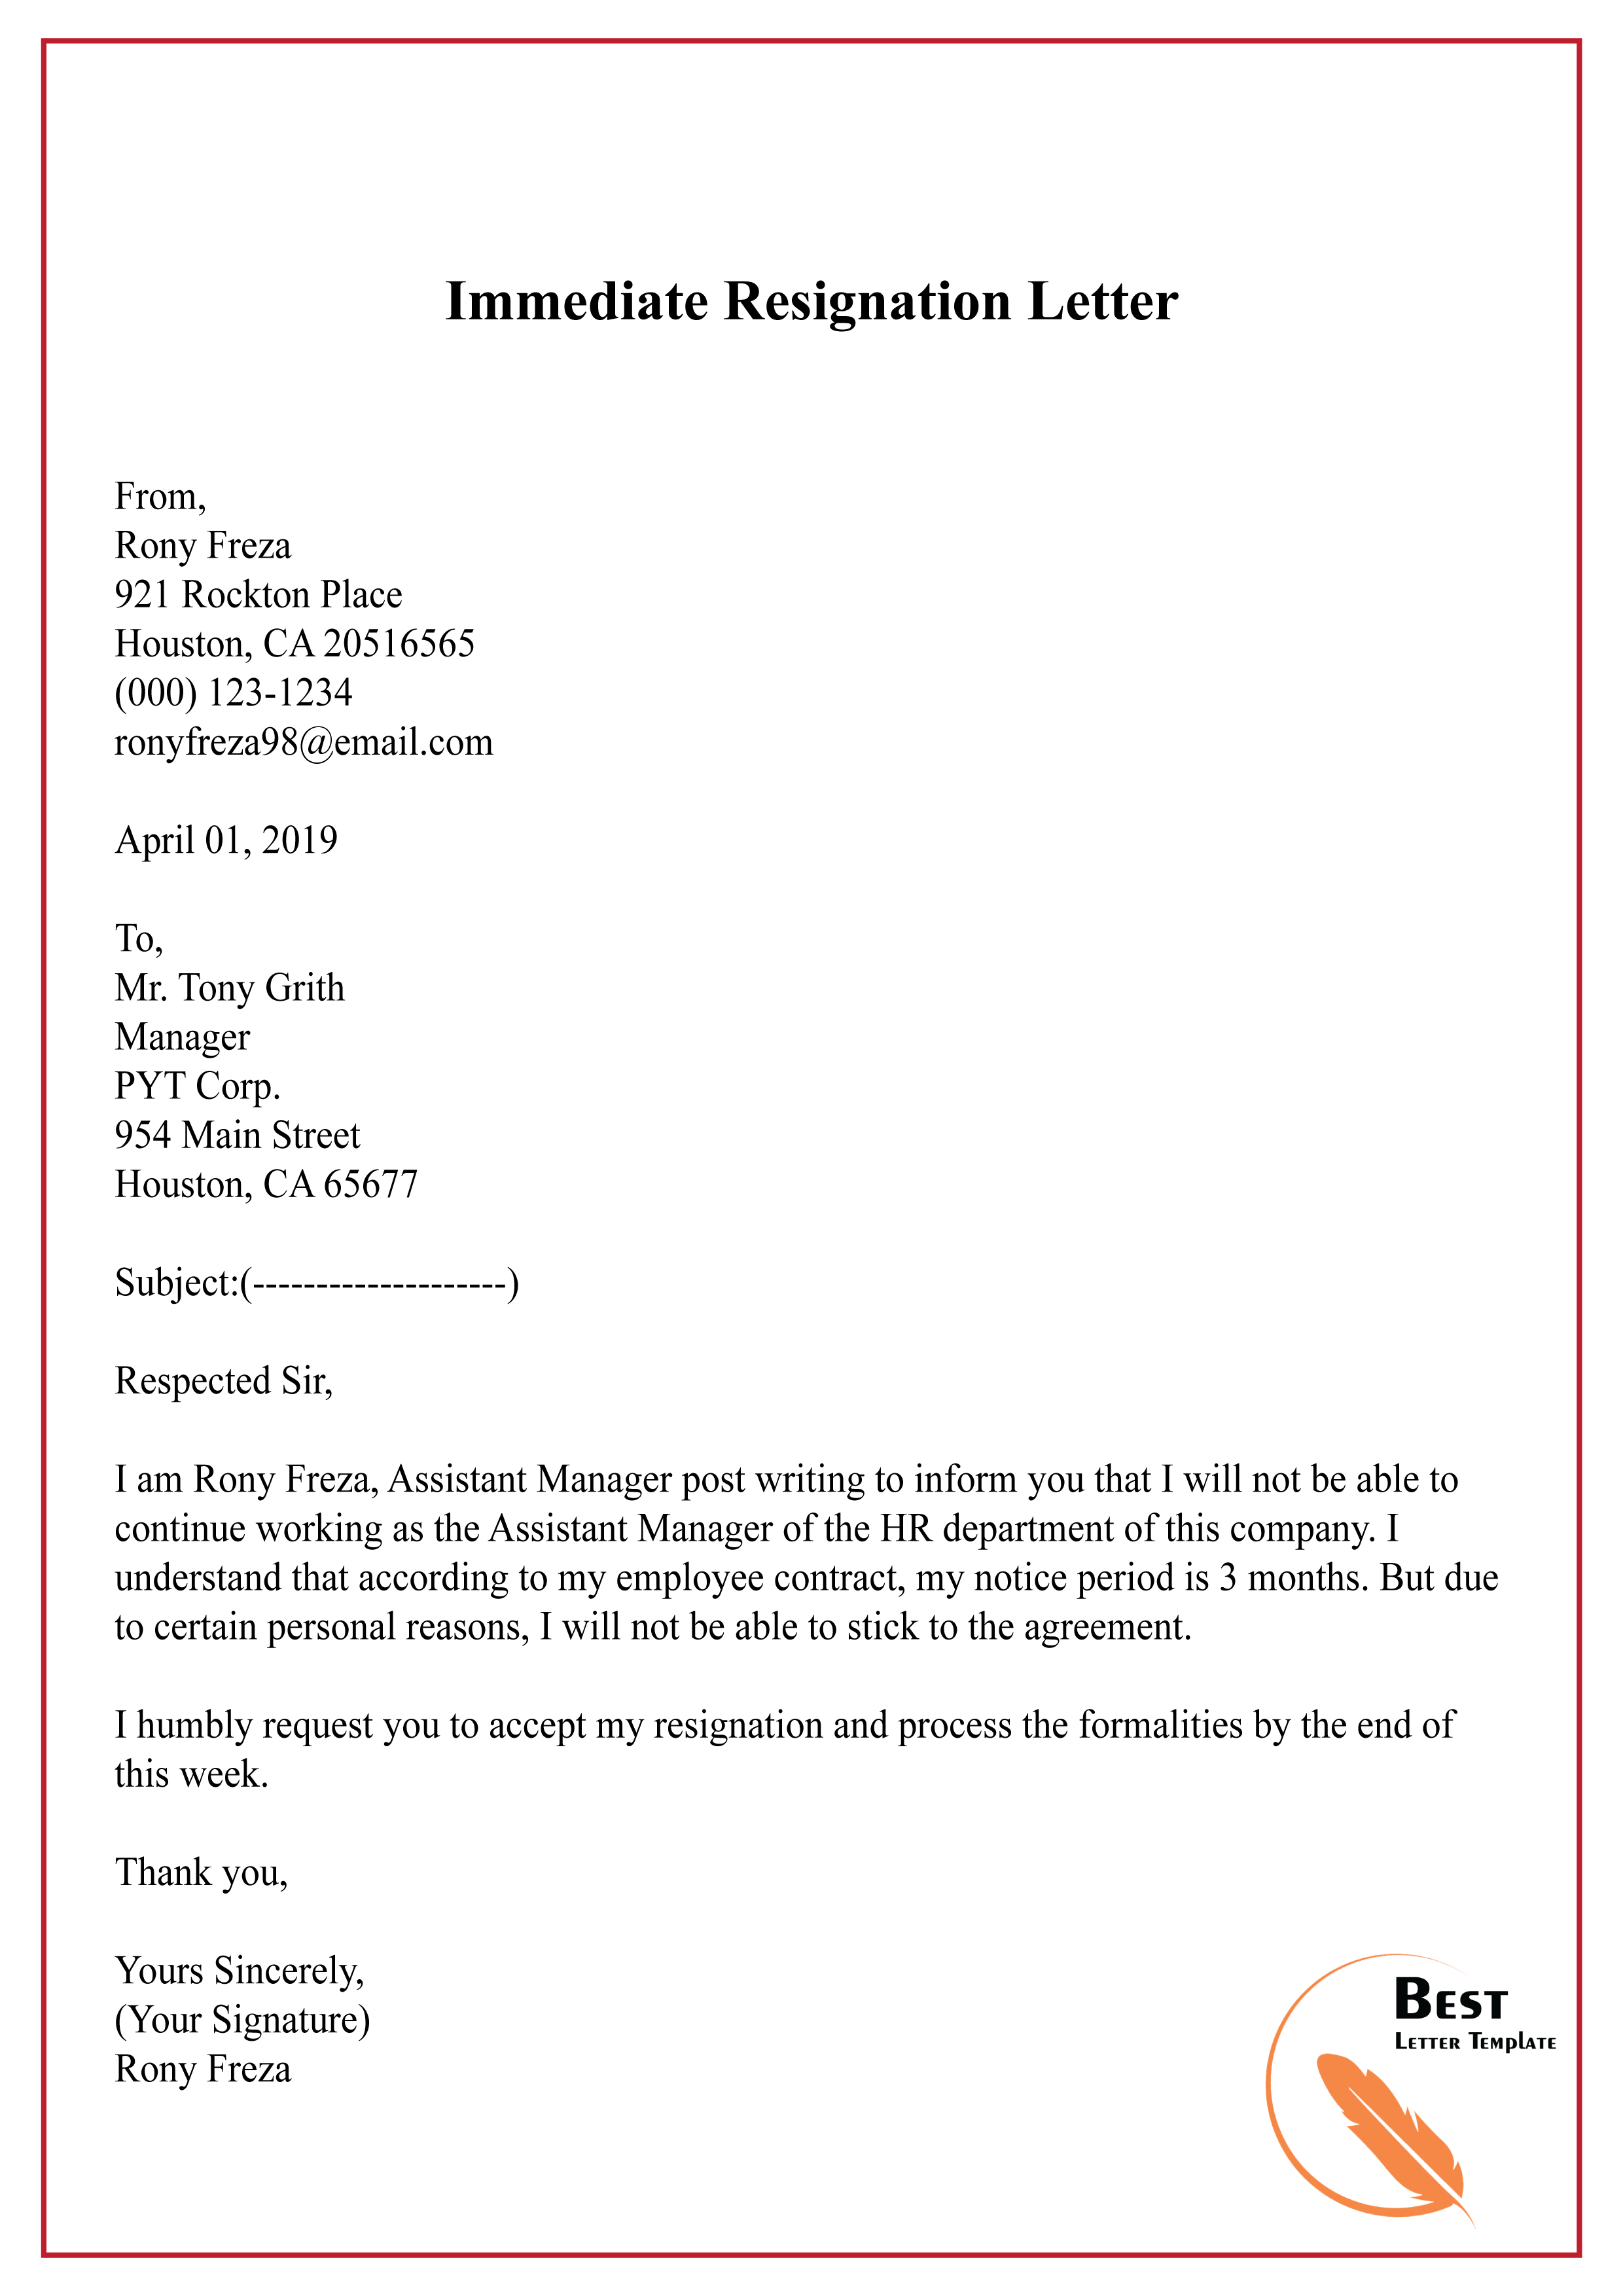 Immediate Resignation Letter Template